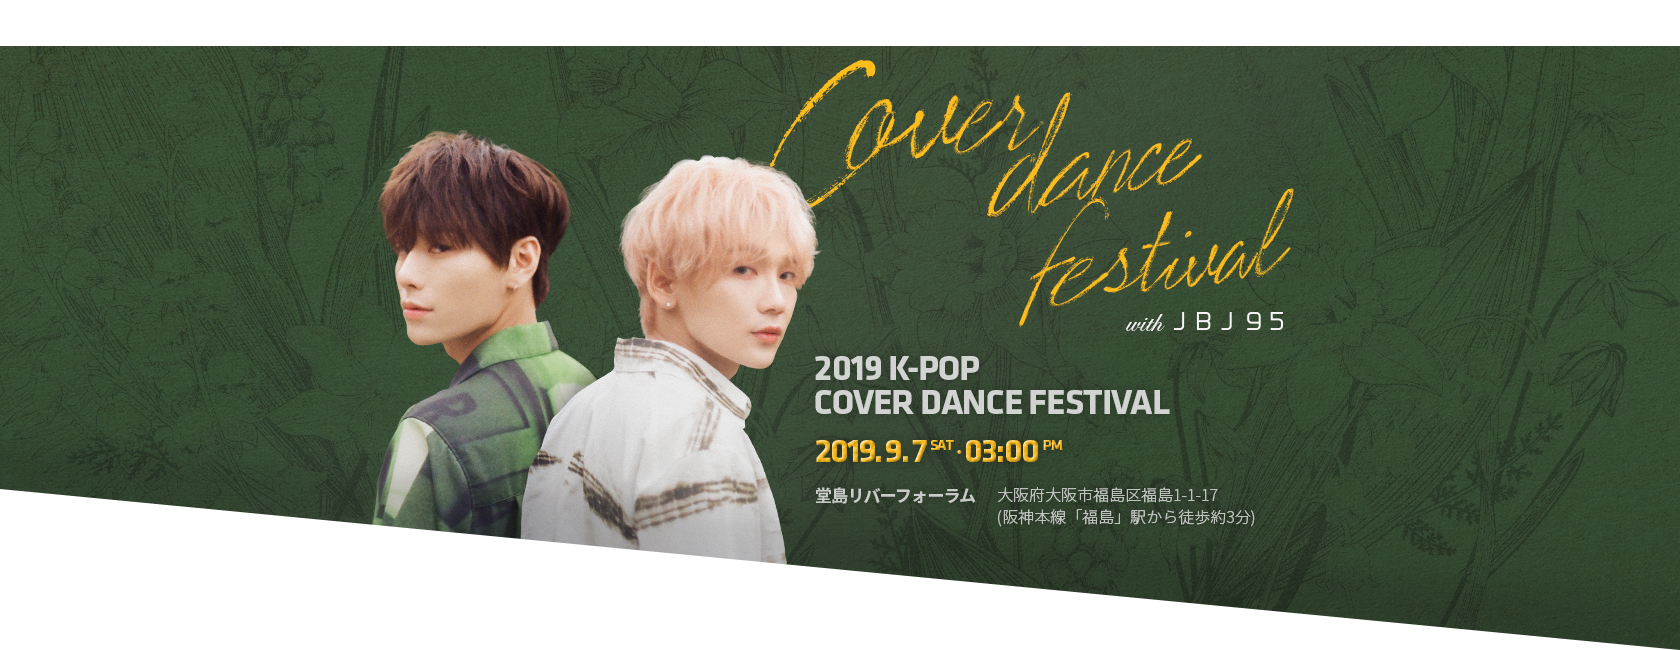 K-POP Cover Dance Festival - Main